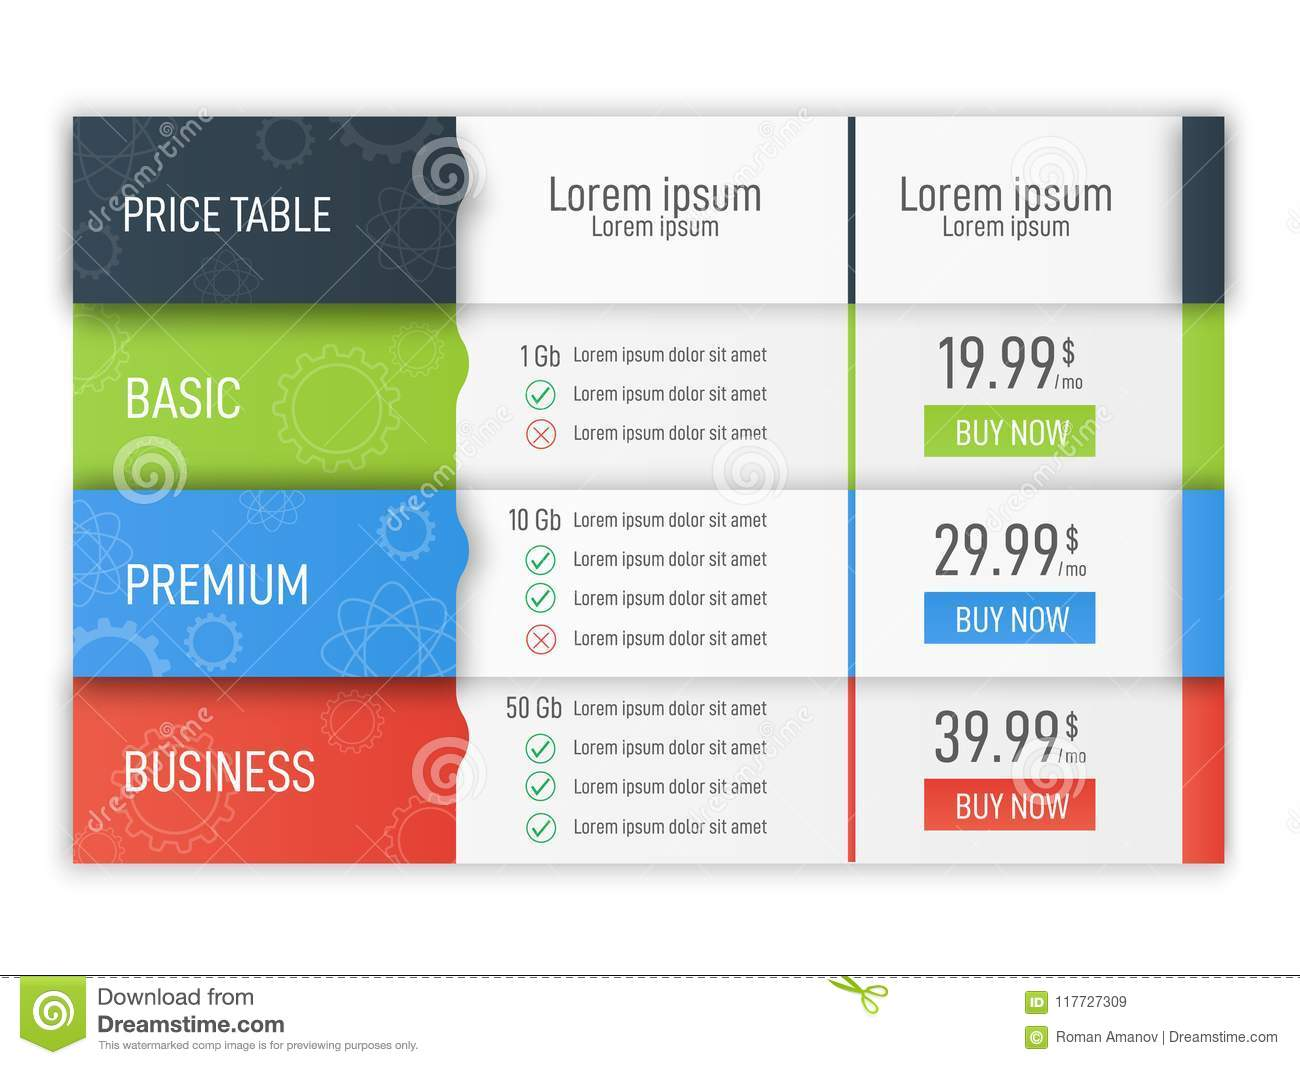 price table for websites and applications business infographic